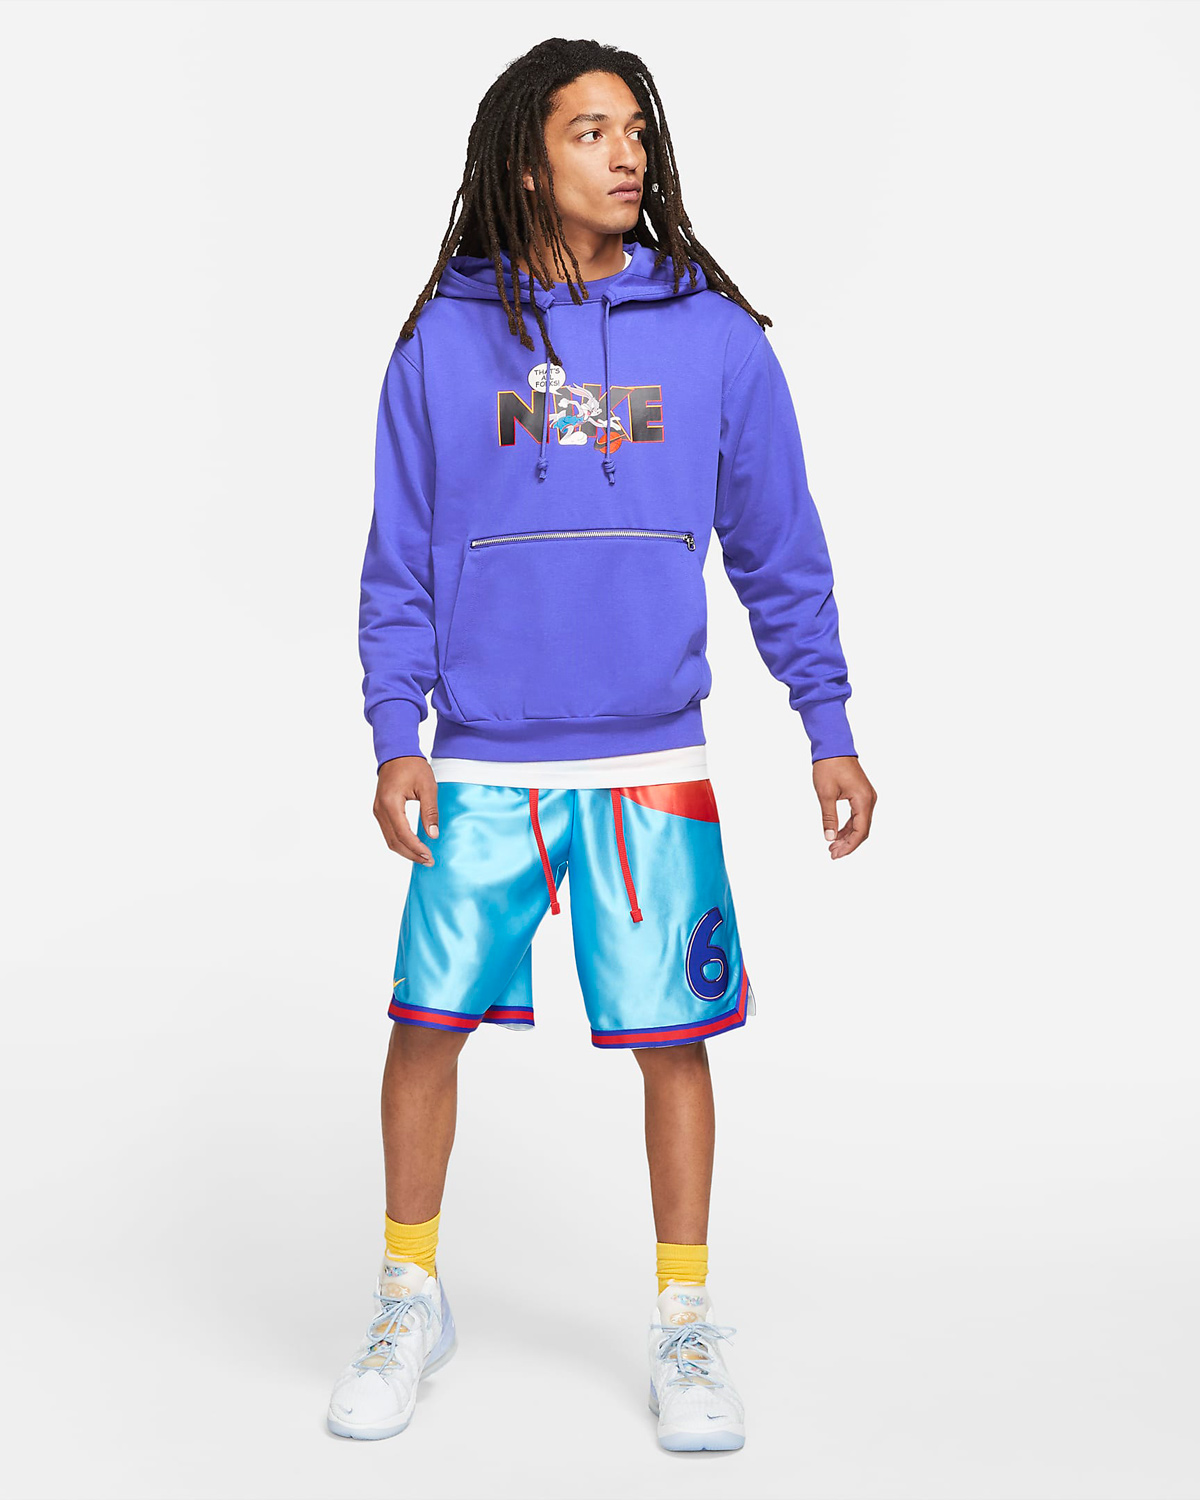 nike-space-jam-a-new-legacy-concord-hoodie-5